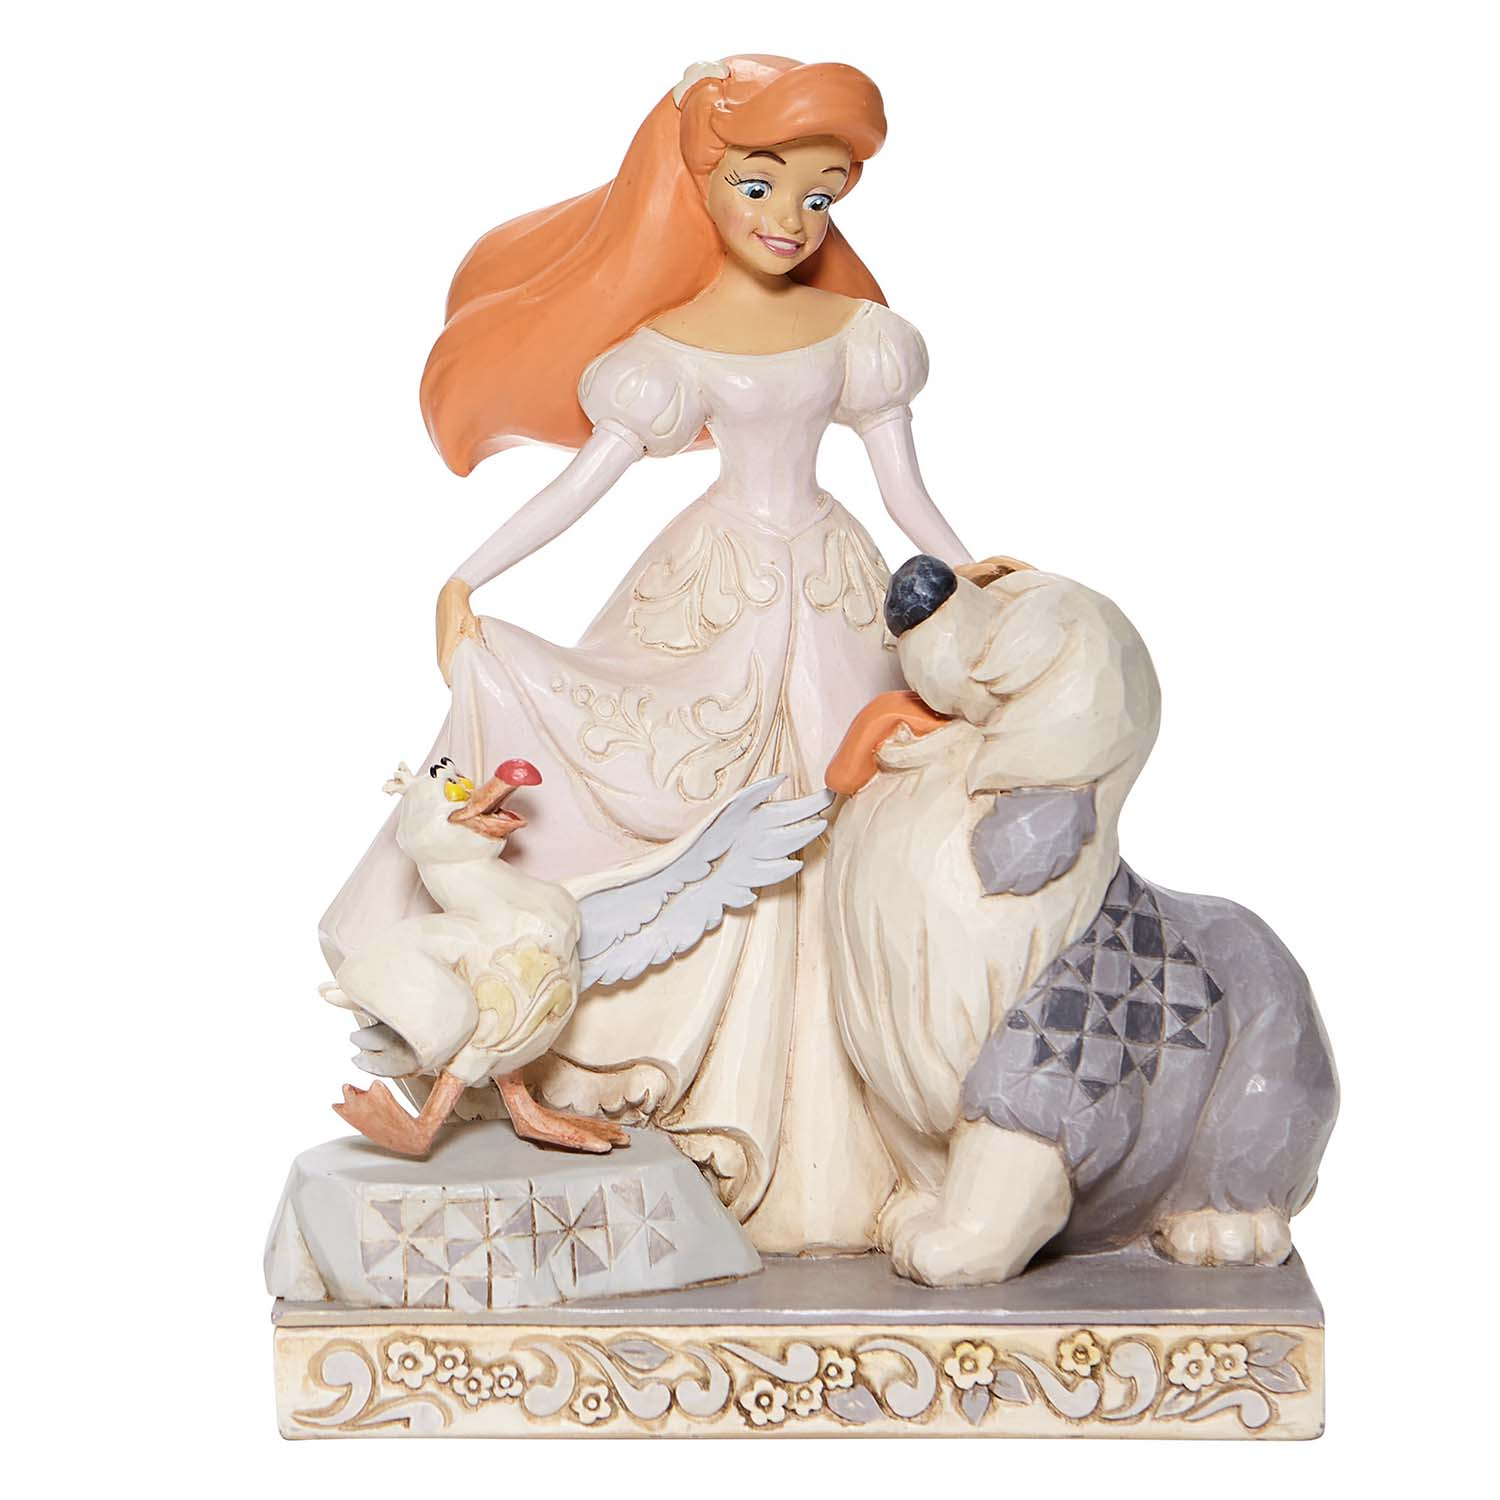 Disney Traditions by Jim Shore - White Woodland Ariel with Max